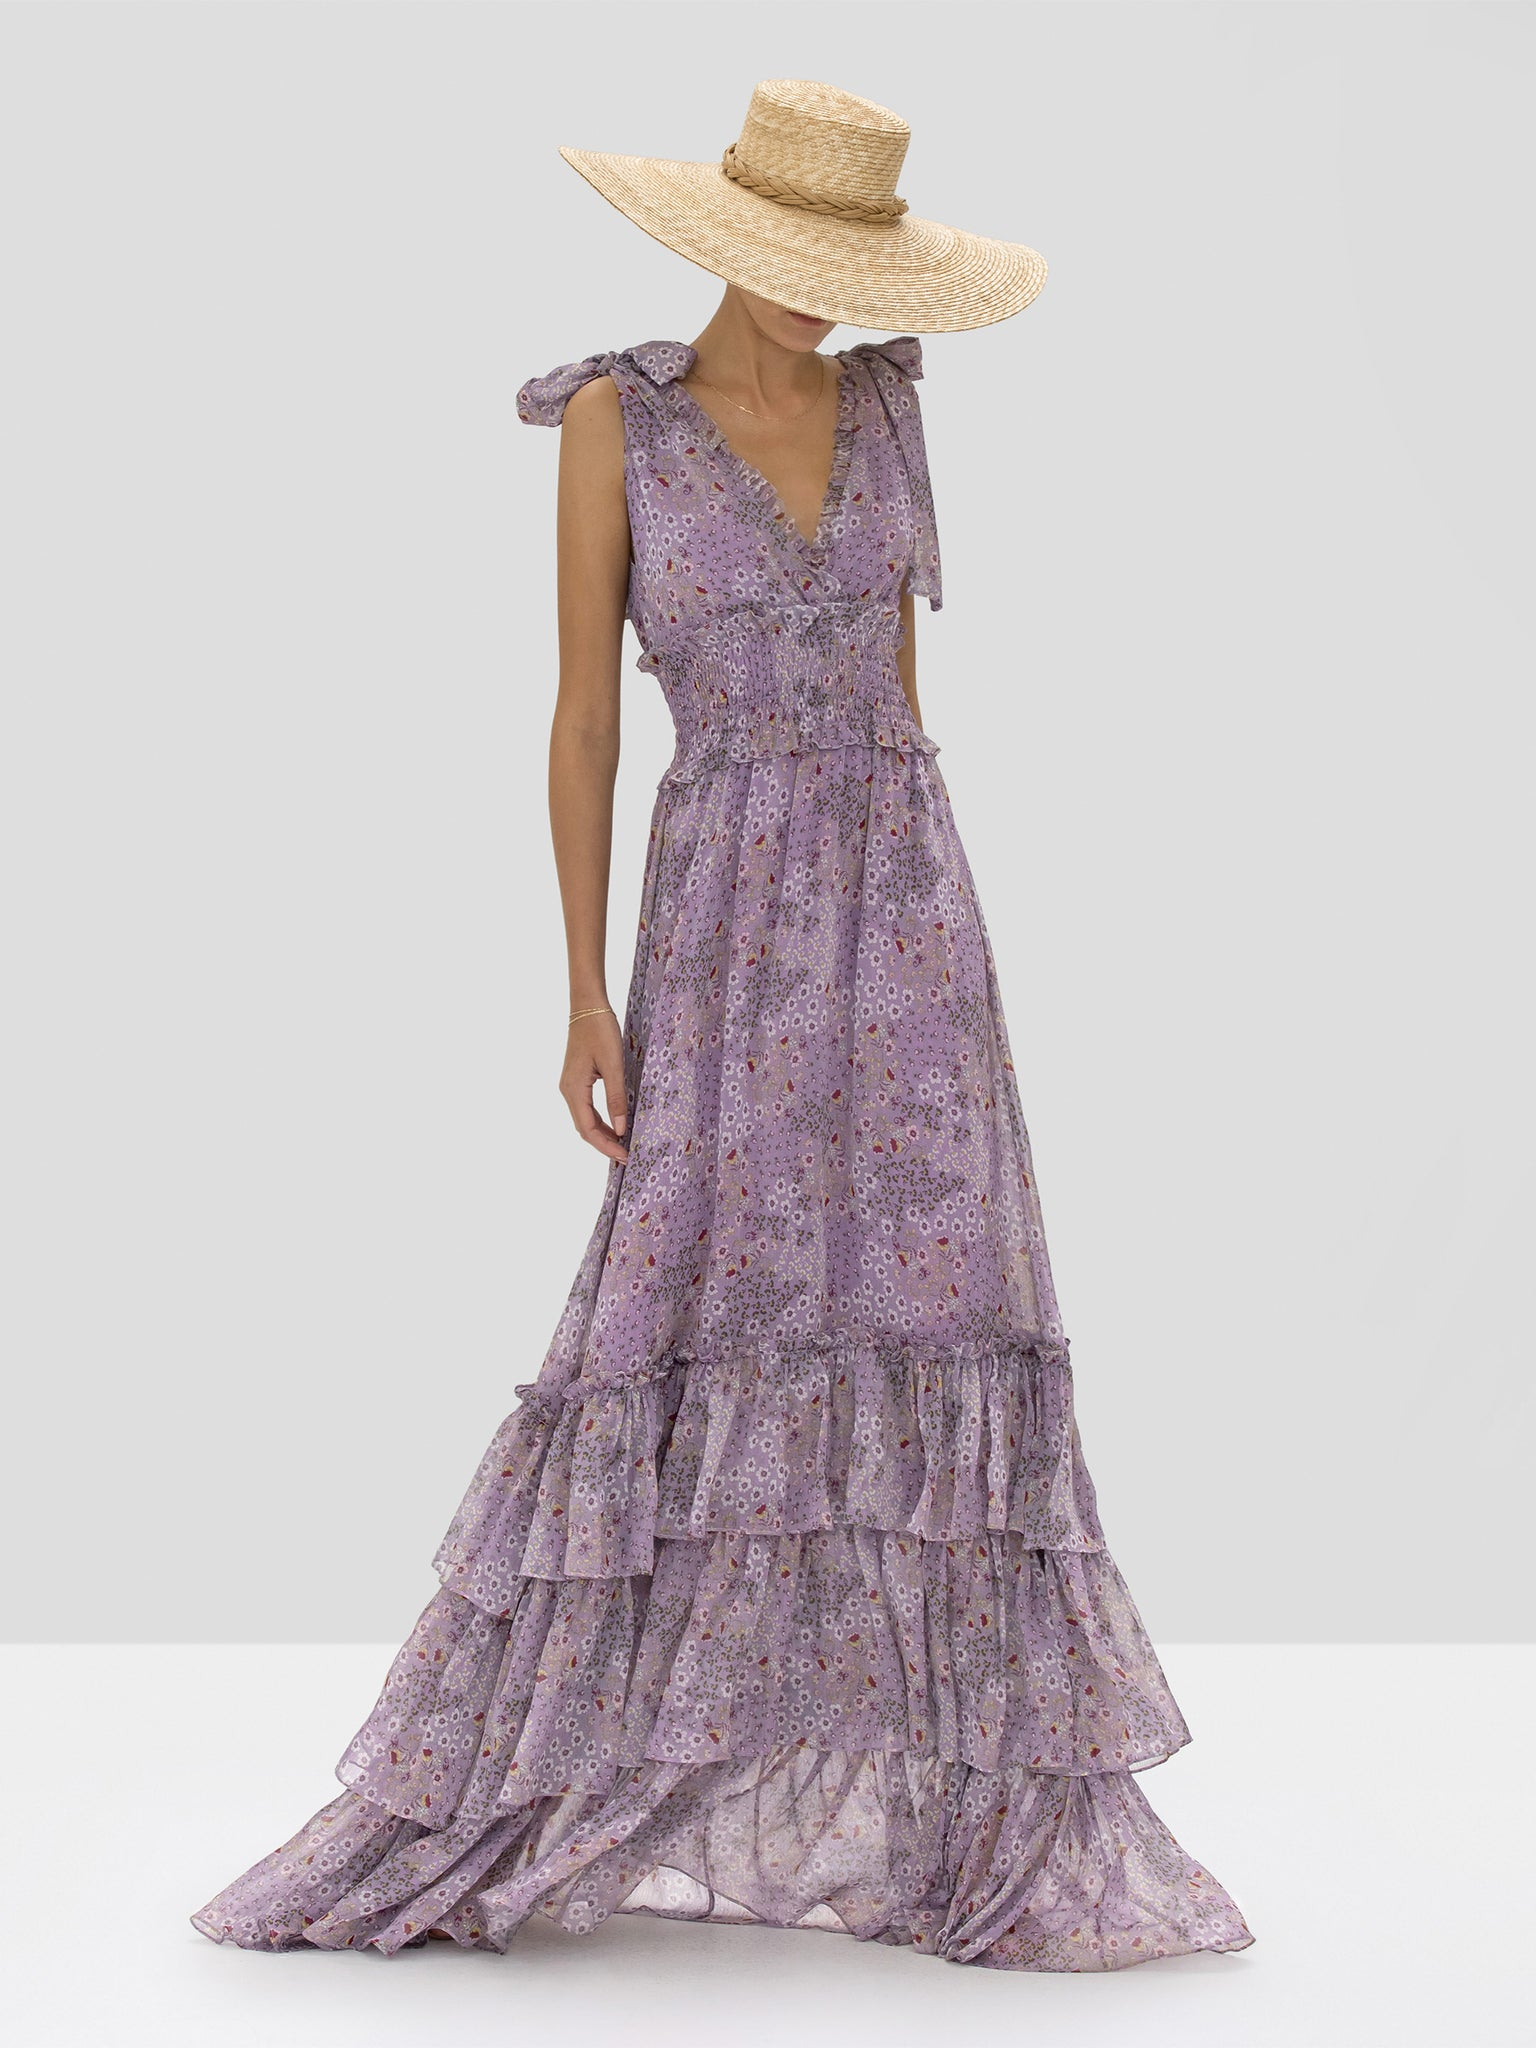 Alexis Clemence Dress in Purple Bouquet from Spring Summer 2020